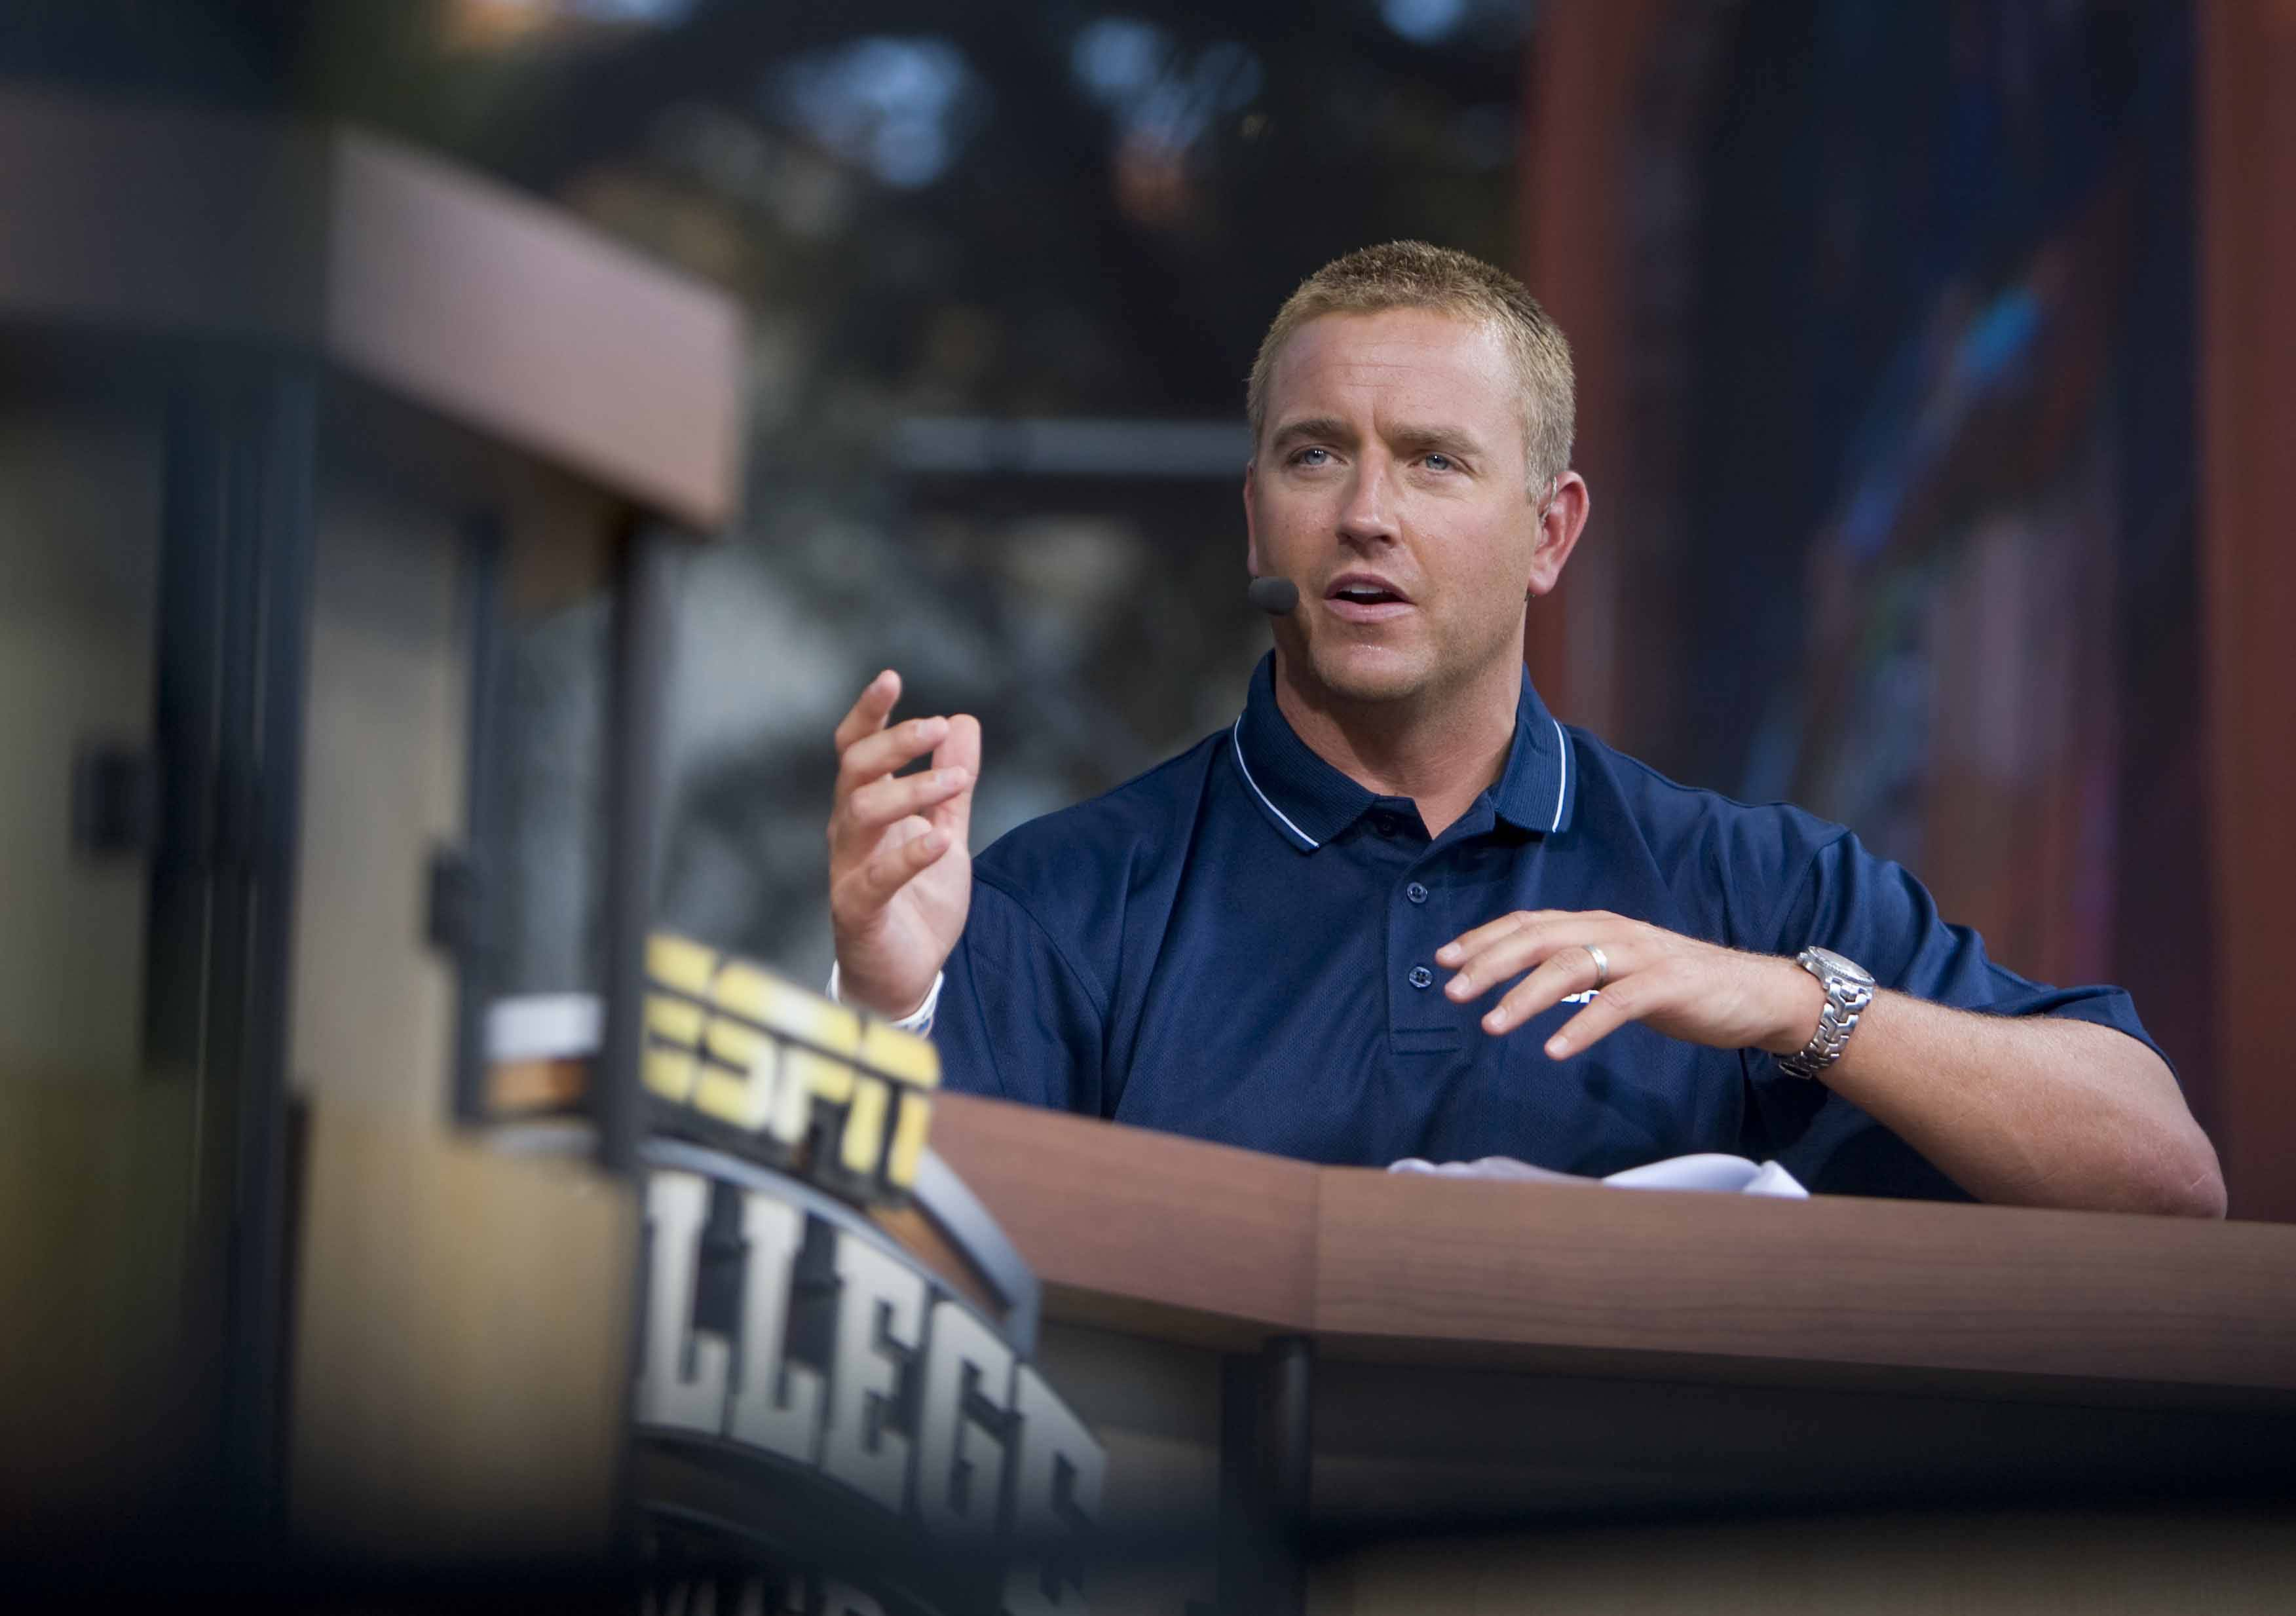 On Second Thought Ep 150: ESPN's Kirk Herbstreit gives his thoughts on Texas' playoff prospects after the loss to LSU